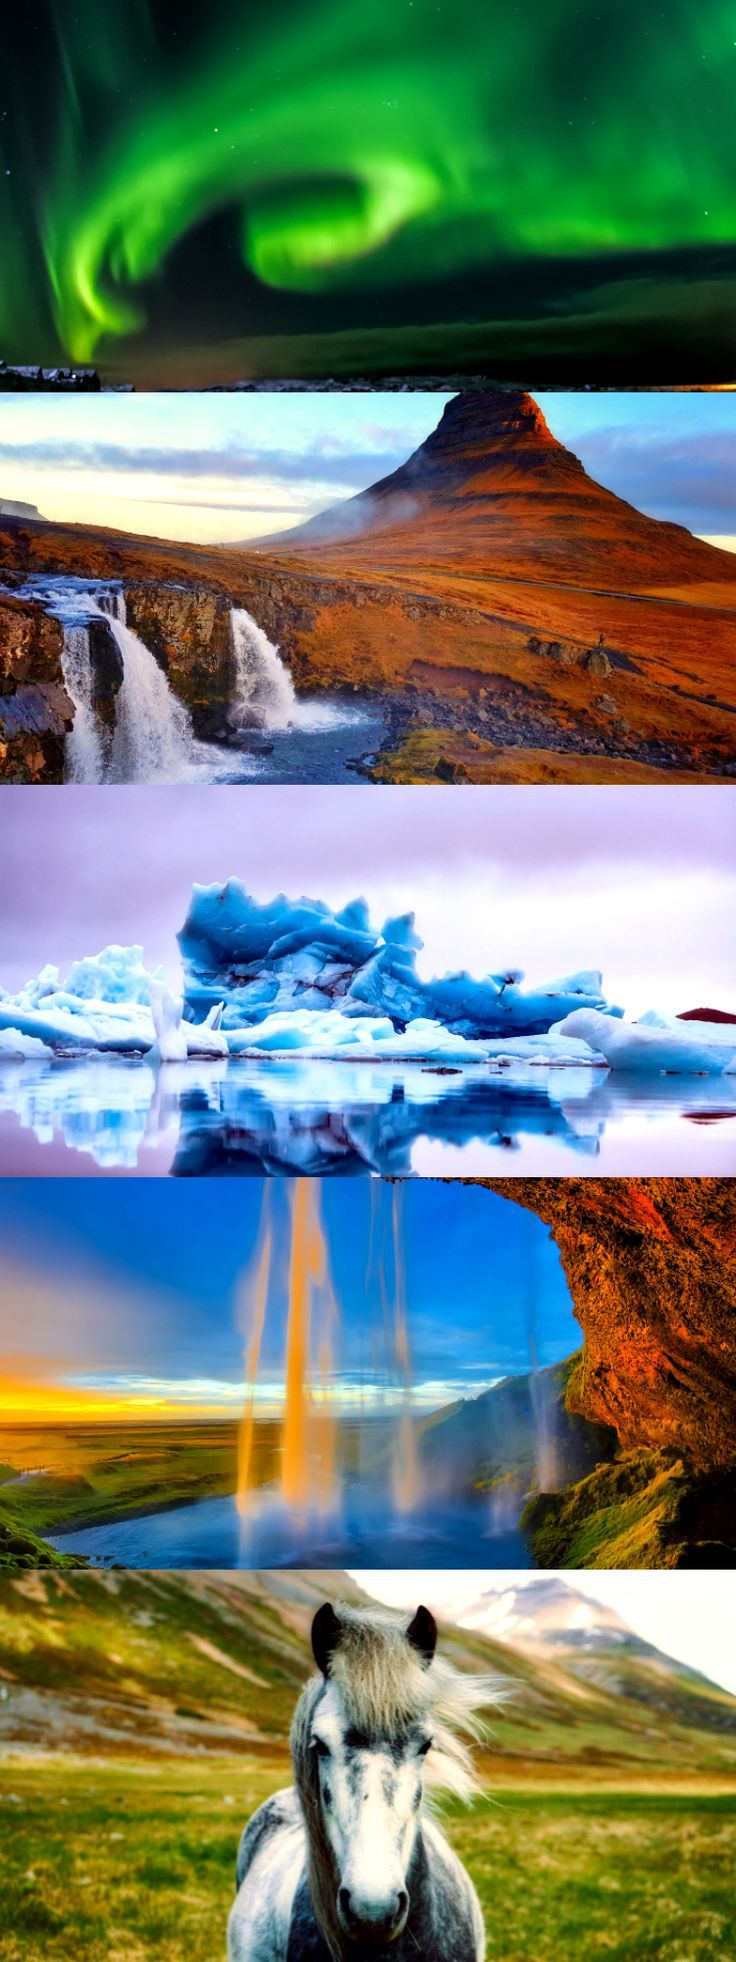 Iceland is a beautiful and mysterious country. It is also a popular holiday destination, and there are a lot of amazing things that you can do and see there. here are some specific do��s and don��ts to make your holiday the coolest trip ever.